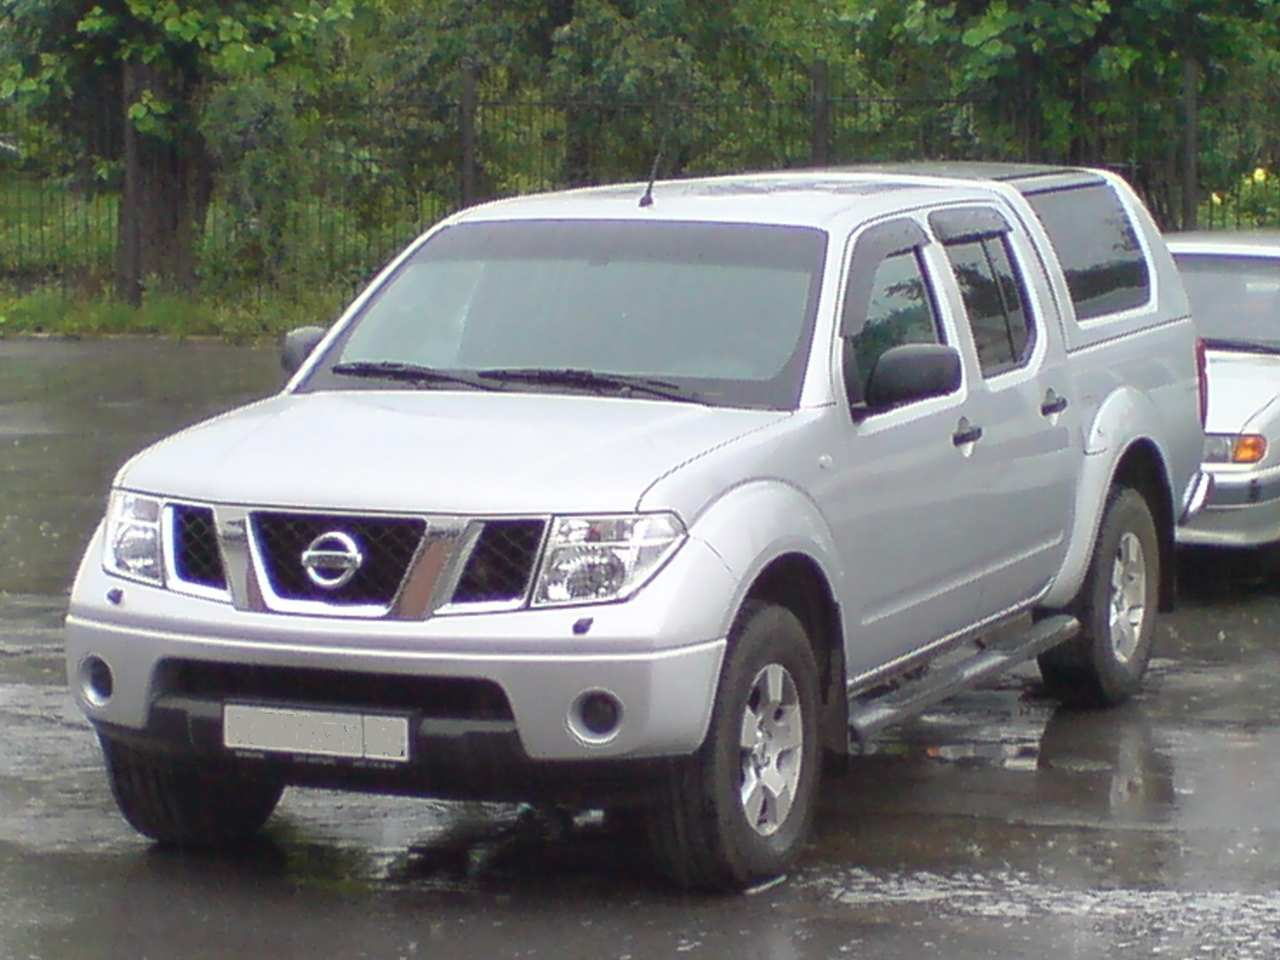 Used 2007 Nissan Navara Photos 2500cc Diesel Manual